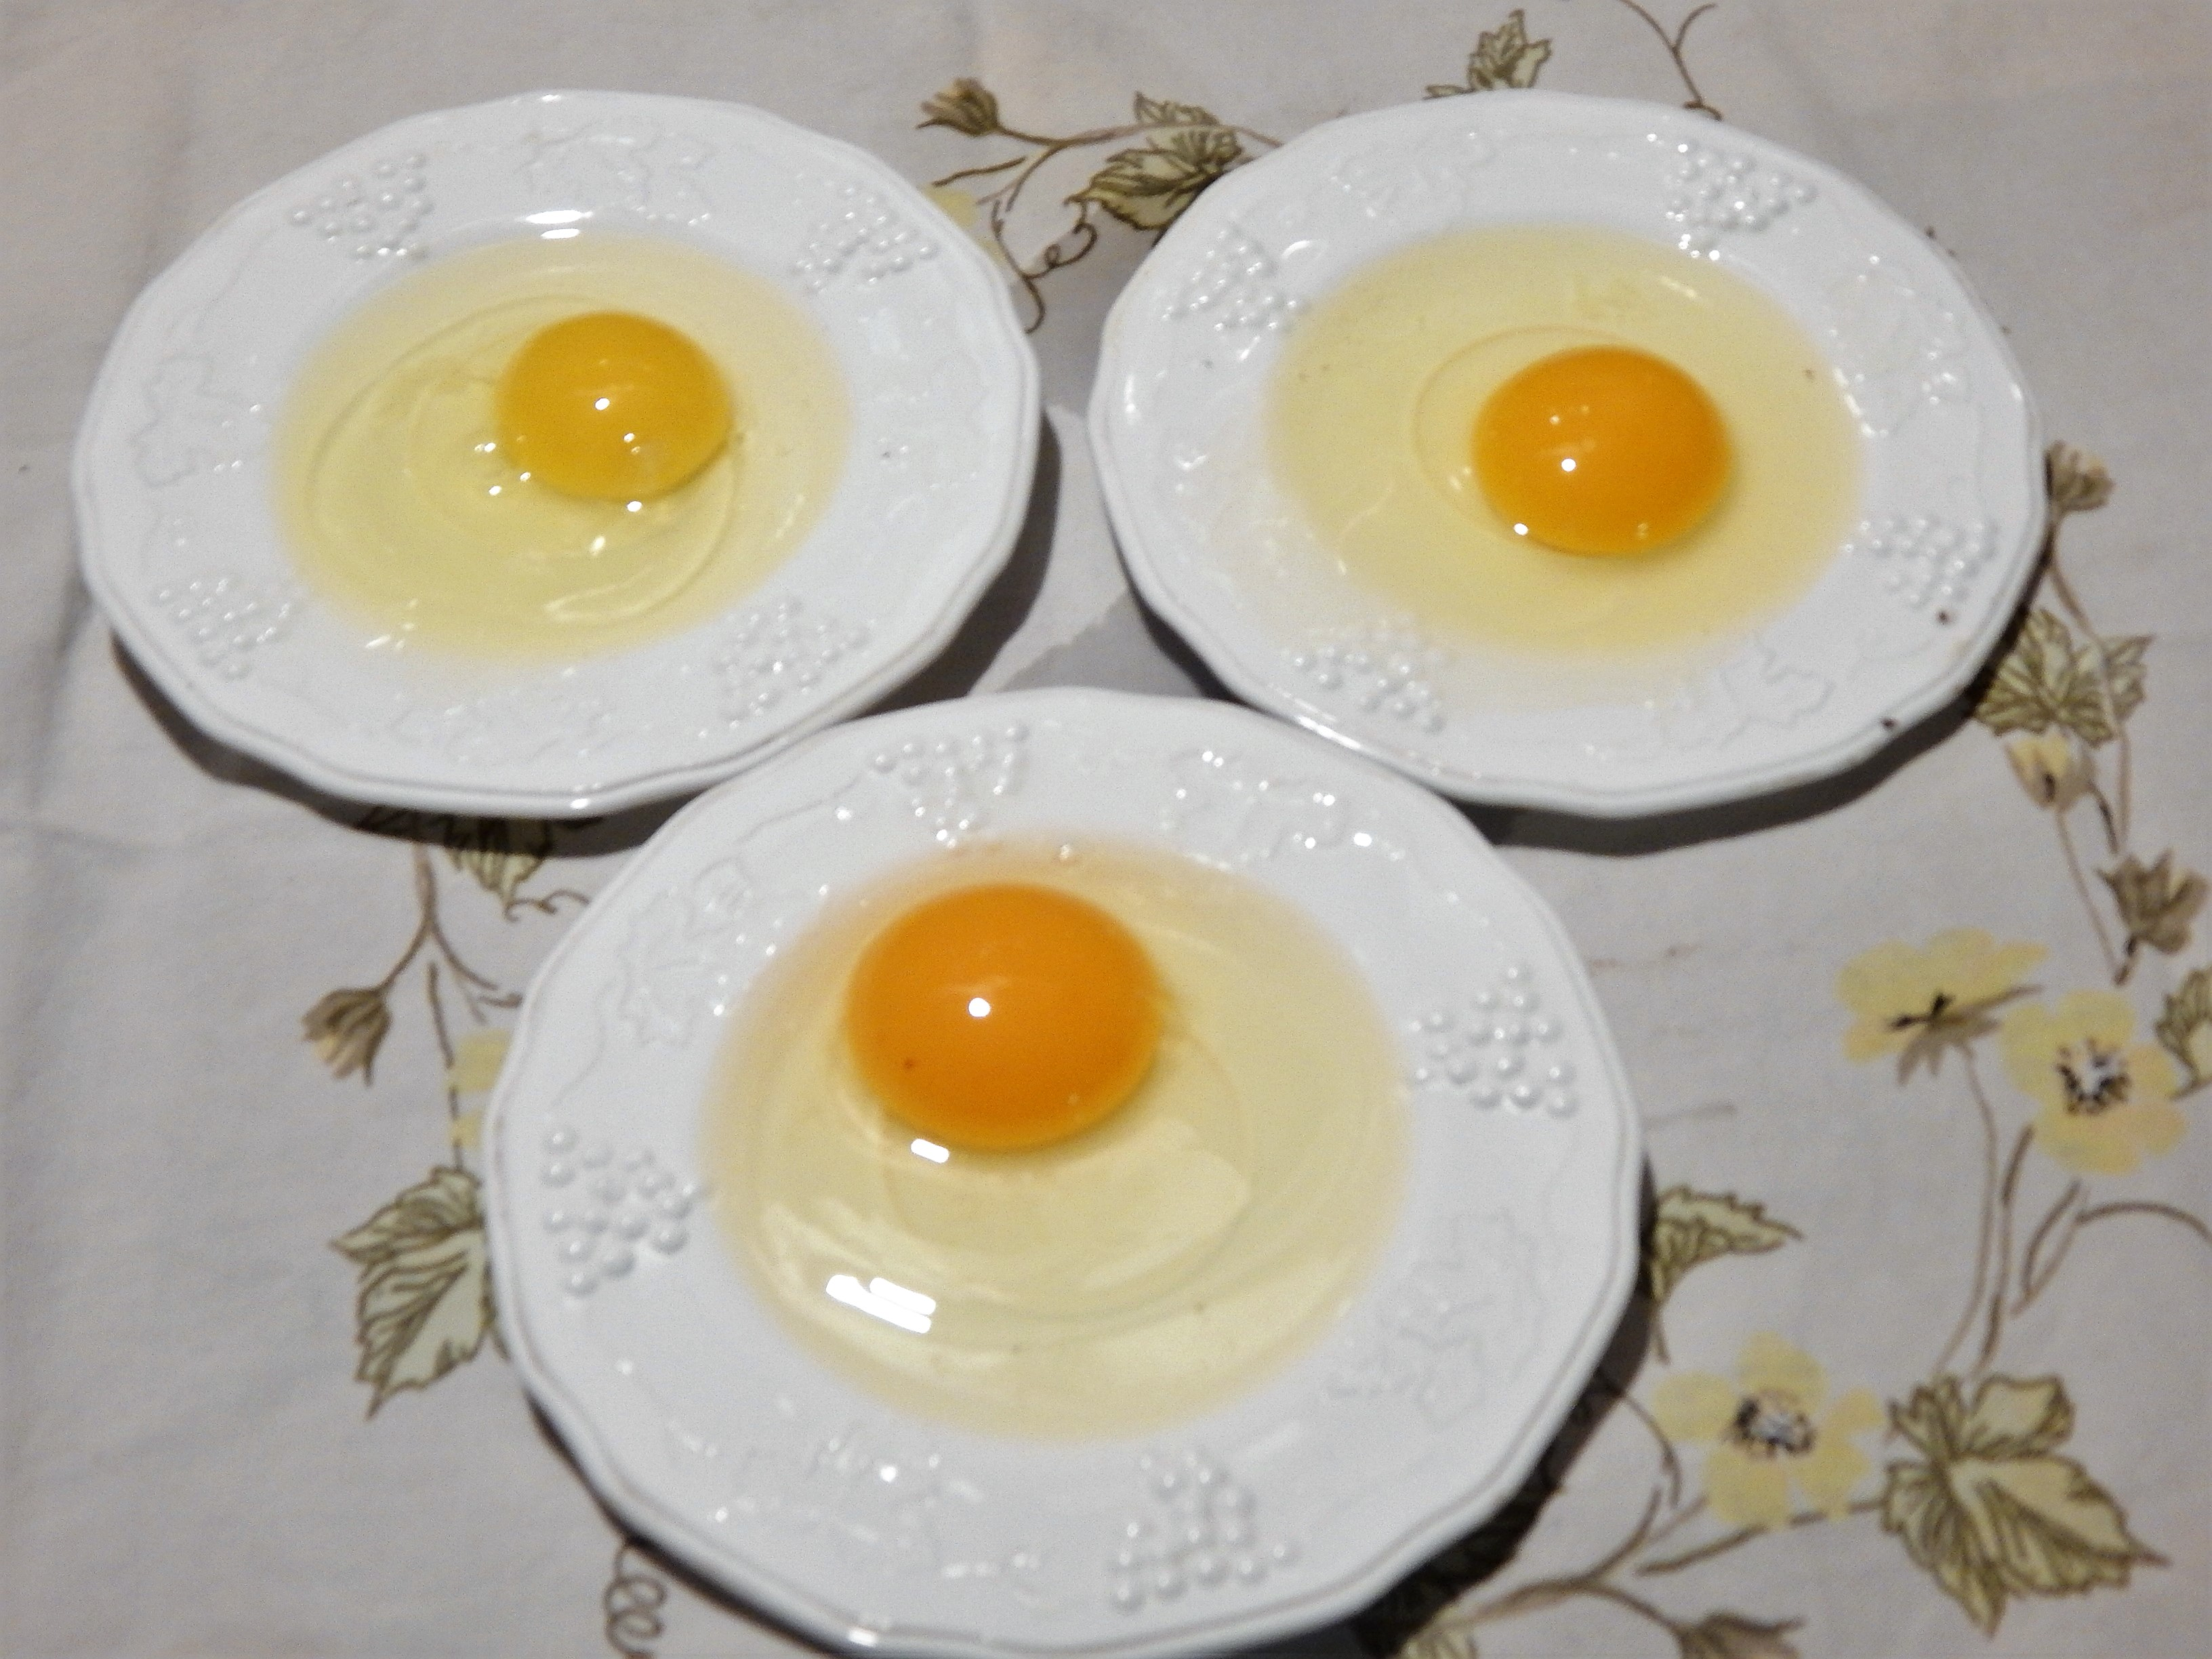 Exploring How Feed Affects Egg Yolk Color